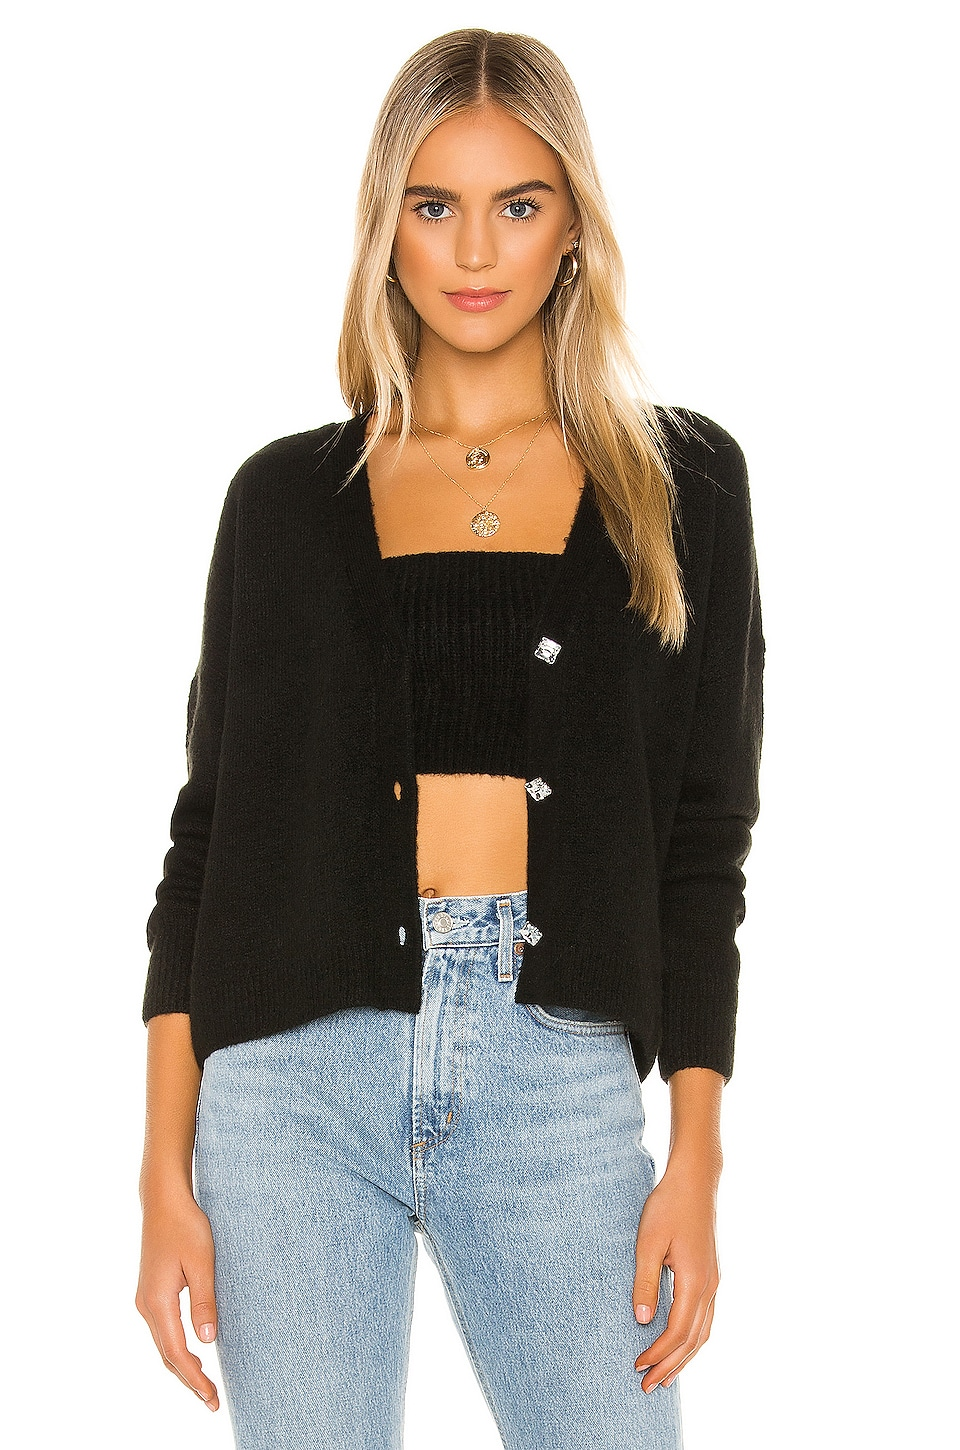 One Grey Day X REVOLVE Cass Cropped Cardigan in Black